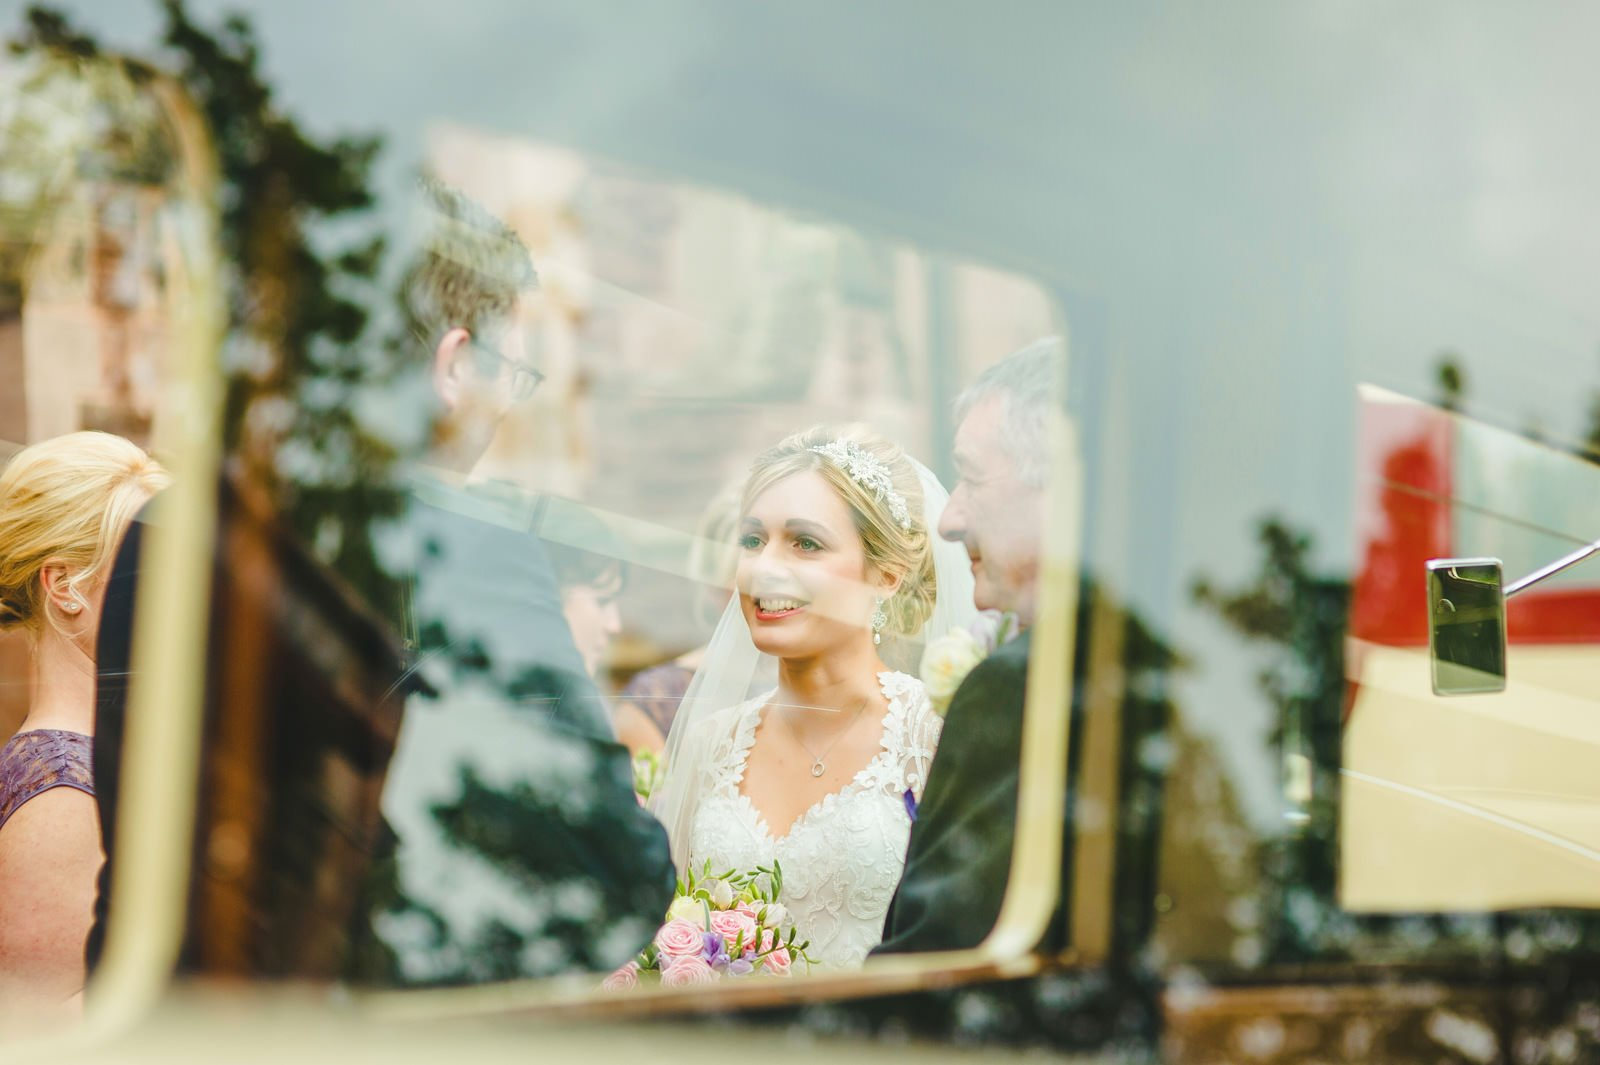 Millers Of Netley wedding, Dorrington, Shrewsbury | Emma + Ben 18